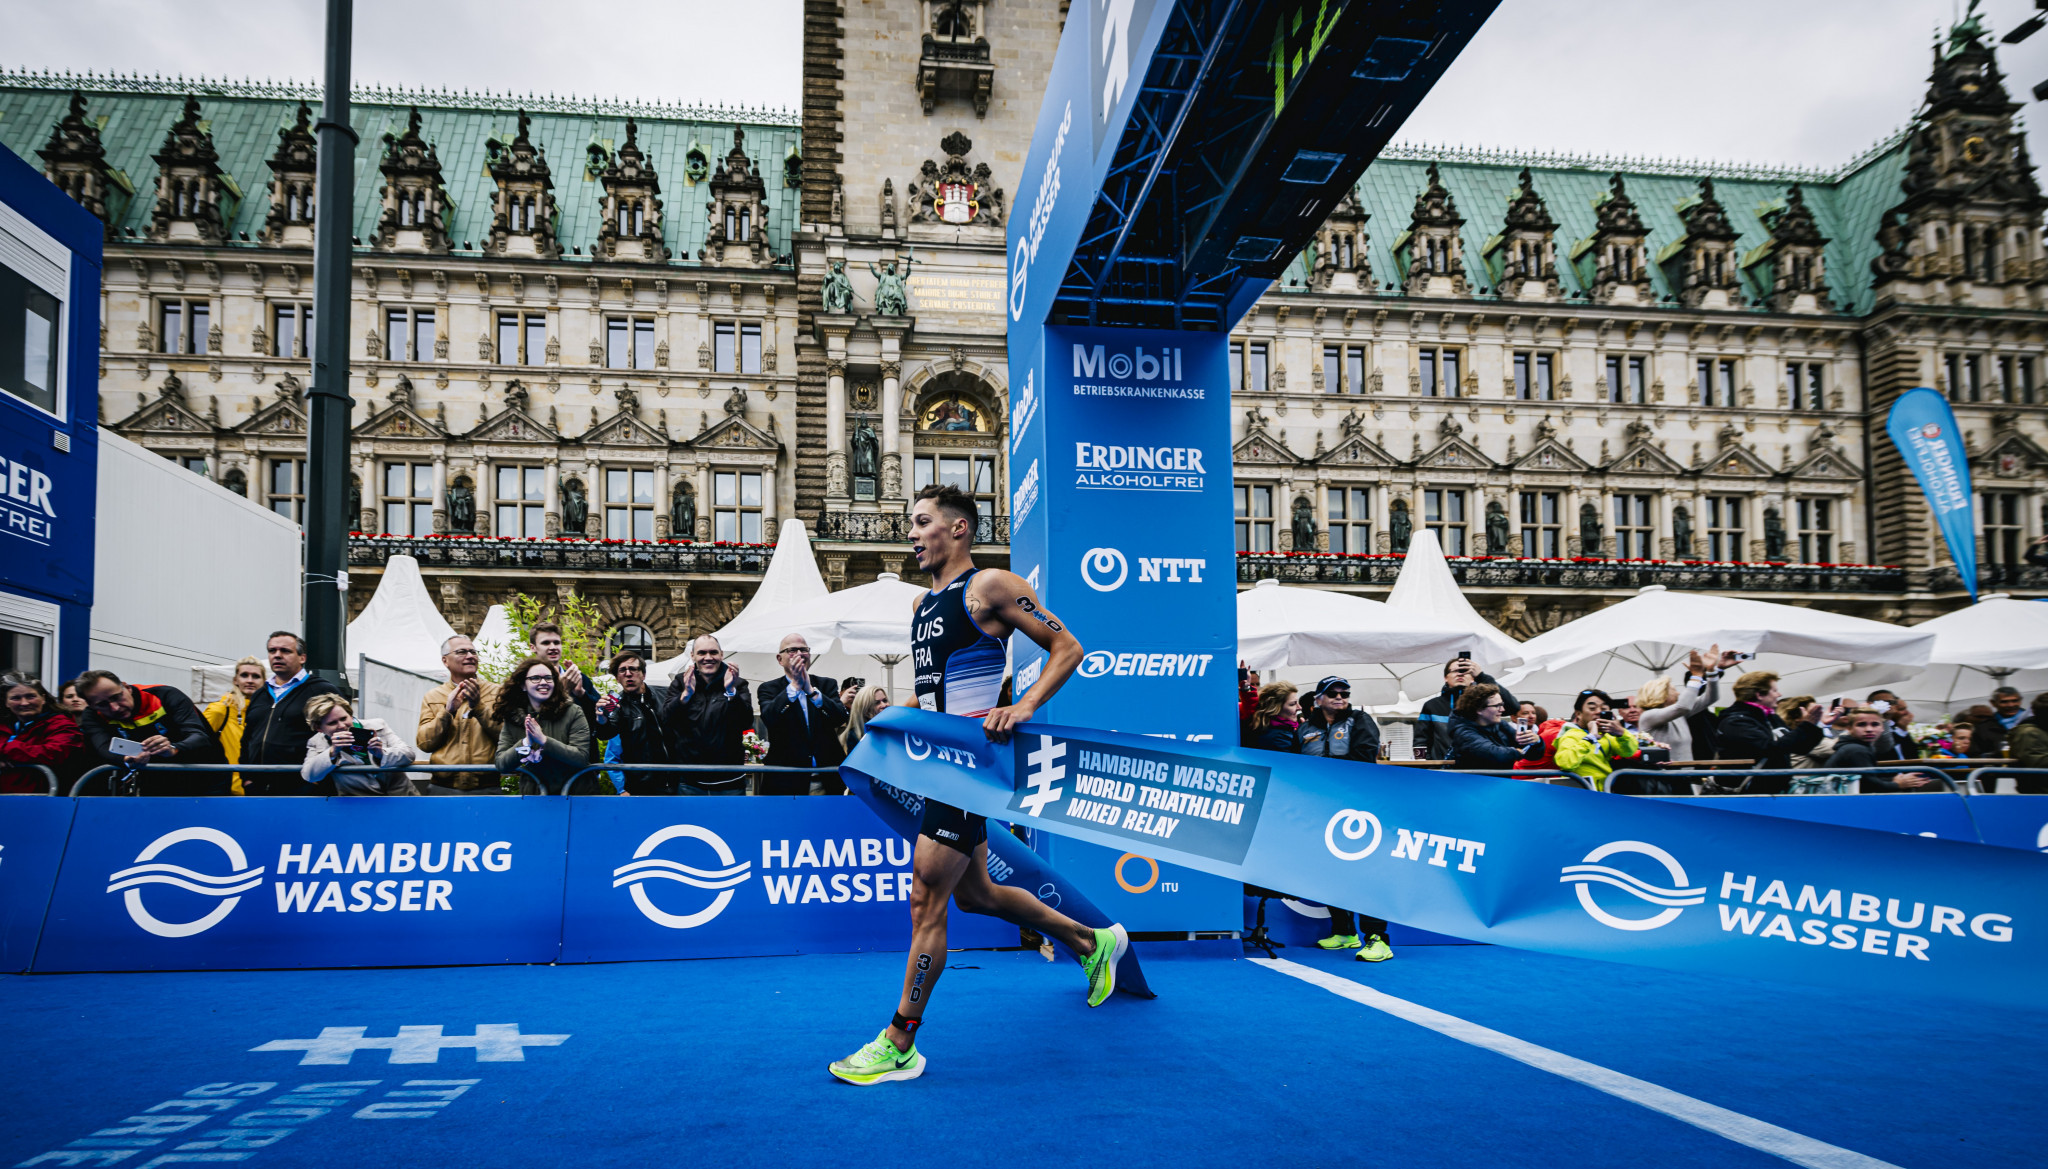 Luis and Zaferes poised for overall glory at World Triathlon Grand Final